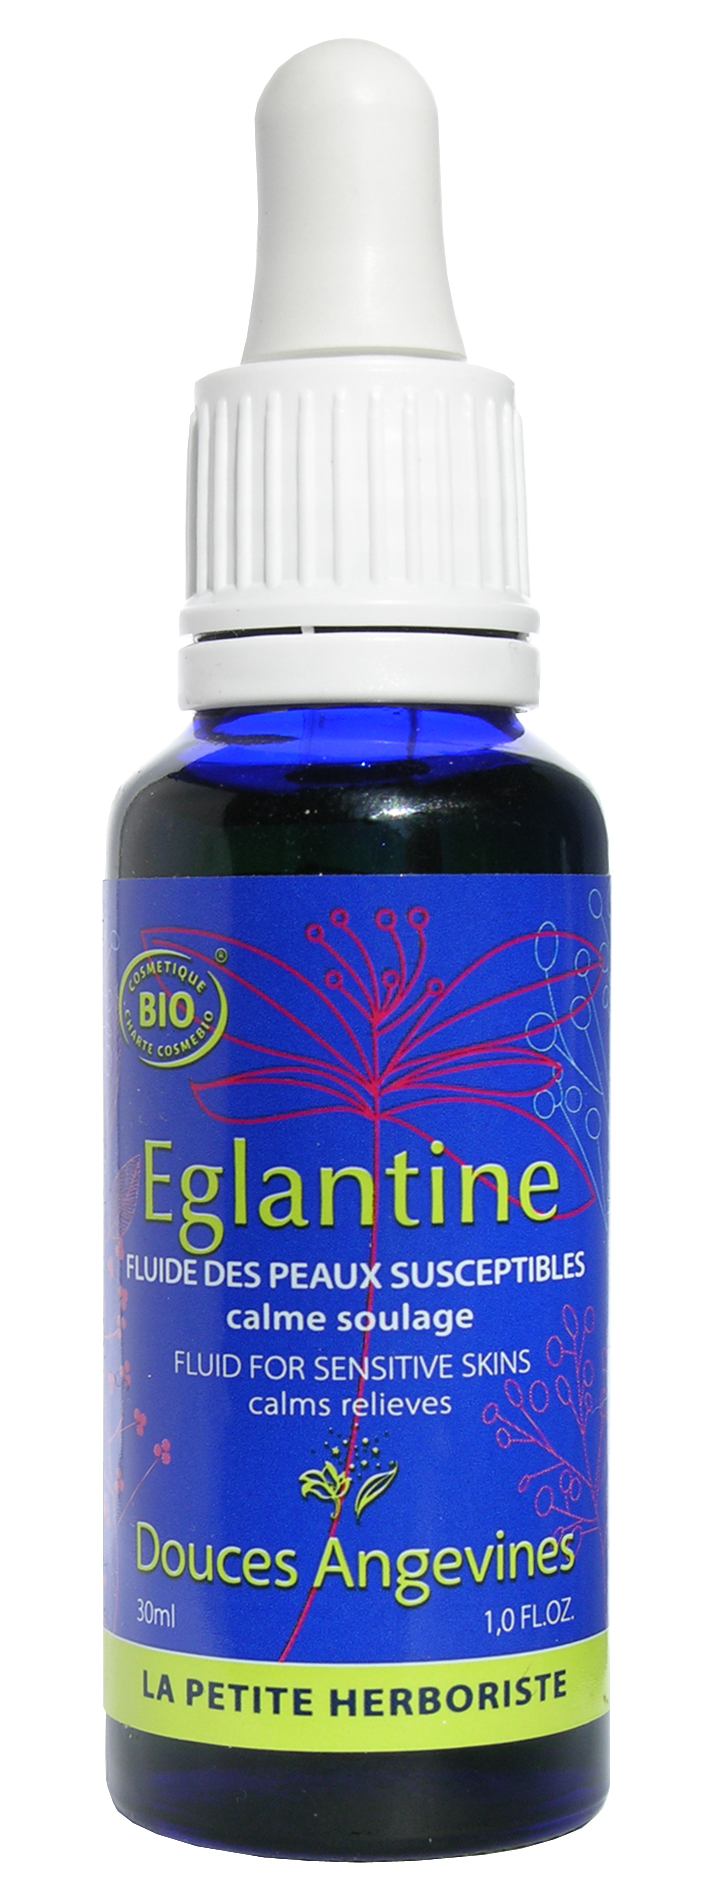 Doux Good - Douces angevines - Eglantine, fluide restaurant la protection des peaux sensibles et dessechees